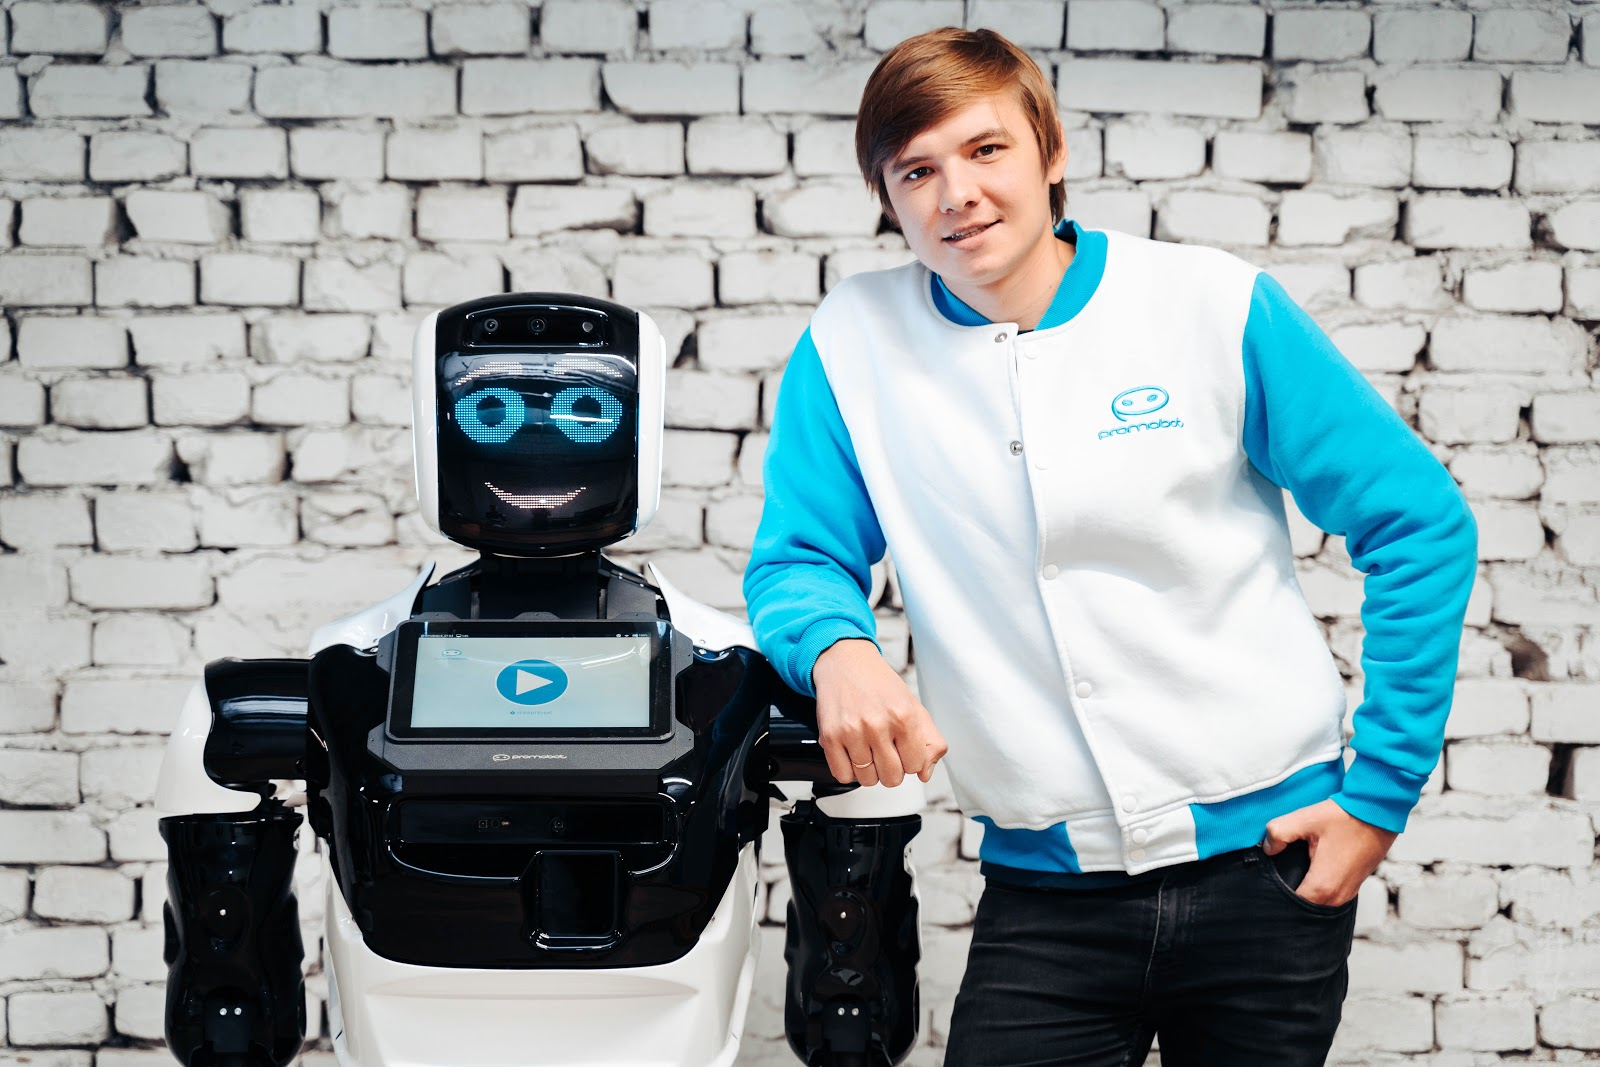 young man standing next to a robot